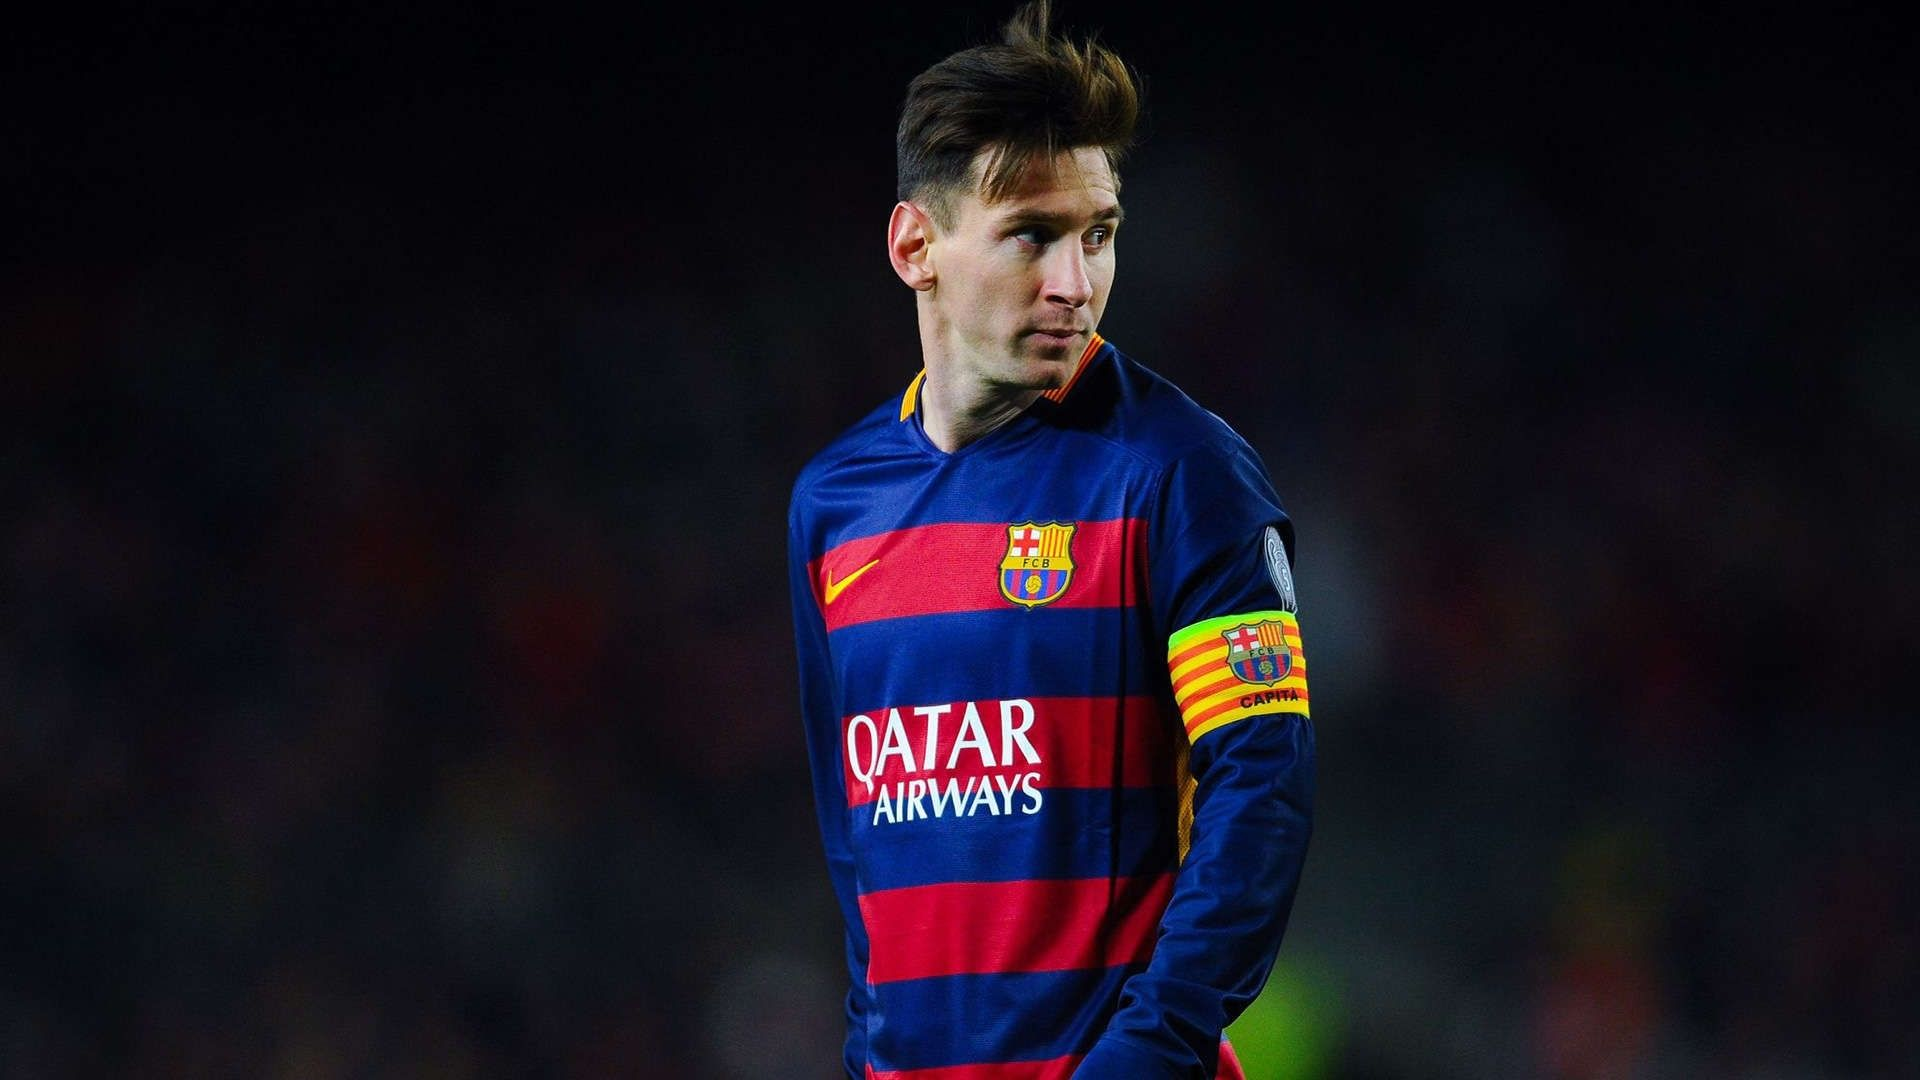 10 New Messi Hd Wallpapers 2016 Full Hd 1080p For Pc Desktop Lionel Messi Wallpapers Lionel Messi Messi